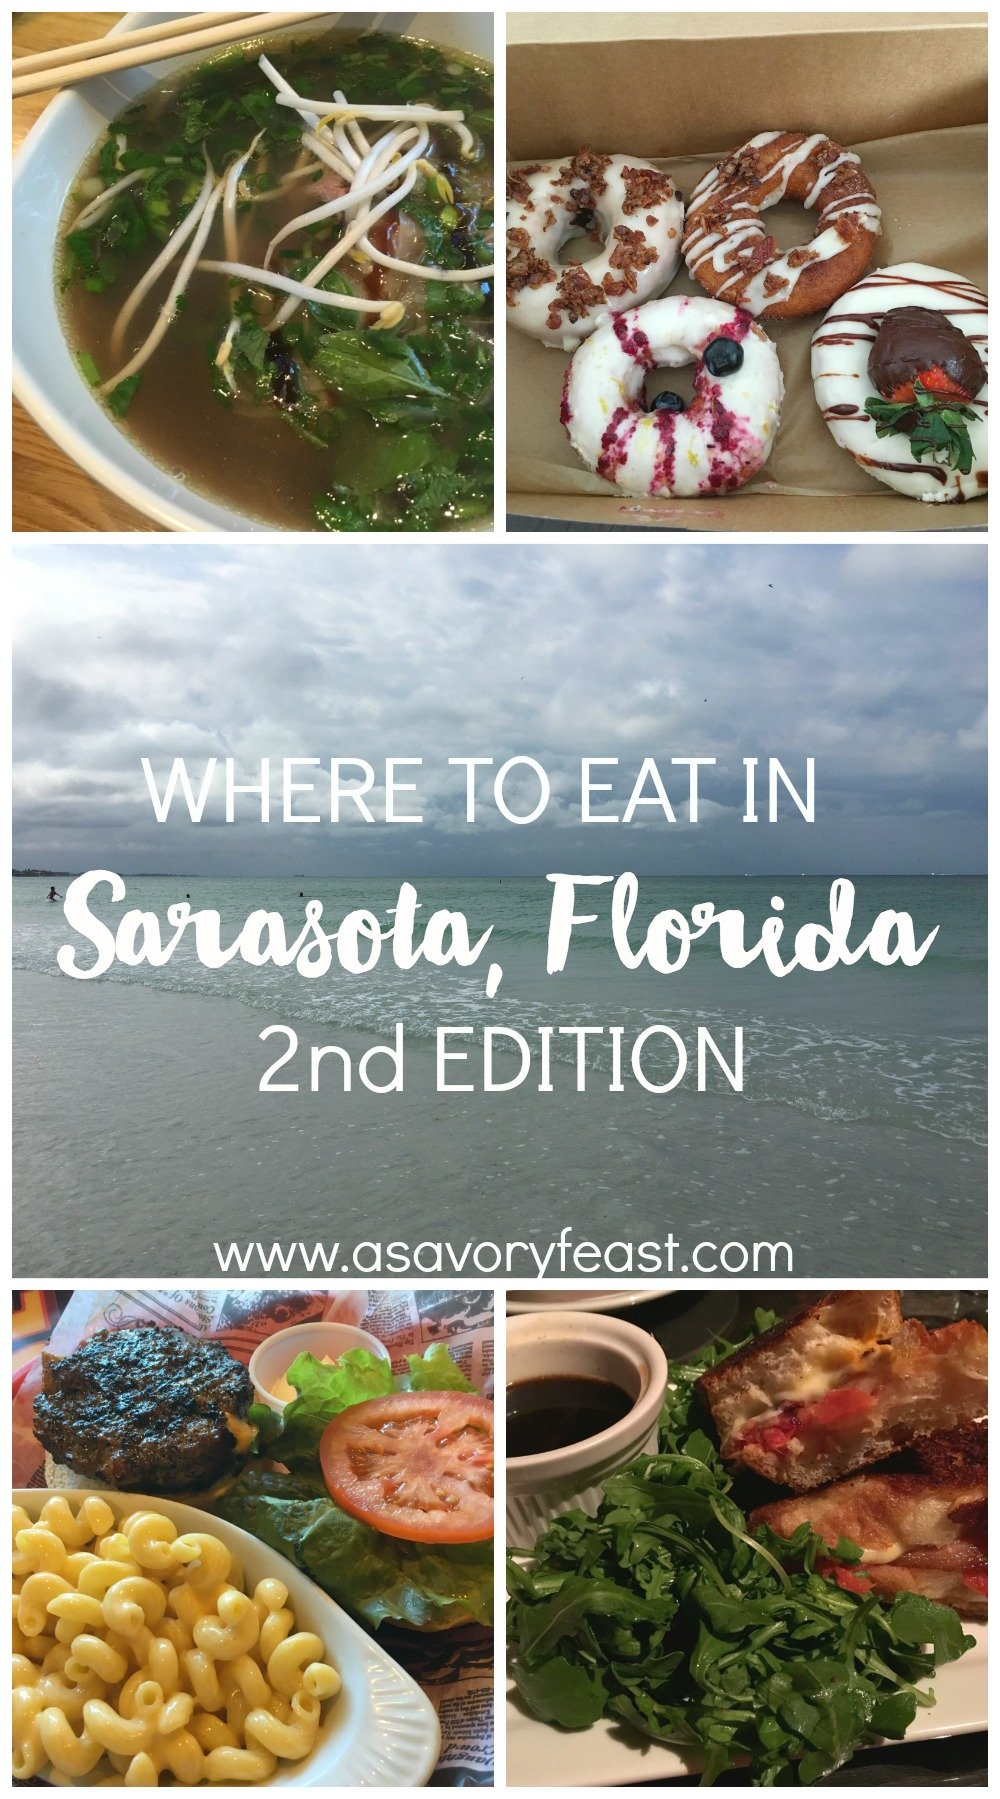 Visiting Sarasota, Florida? Here are some of the top restaurants you've got to try!